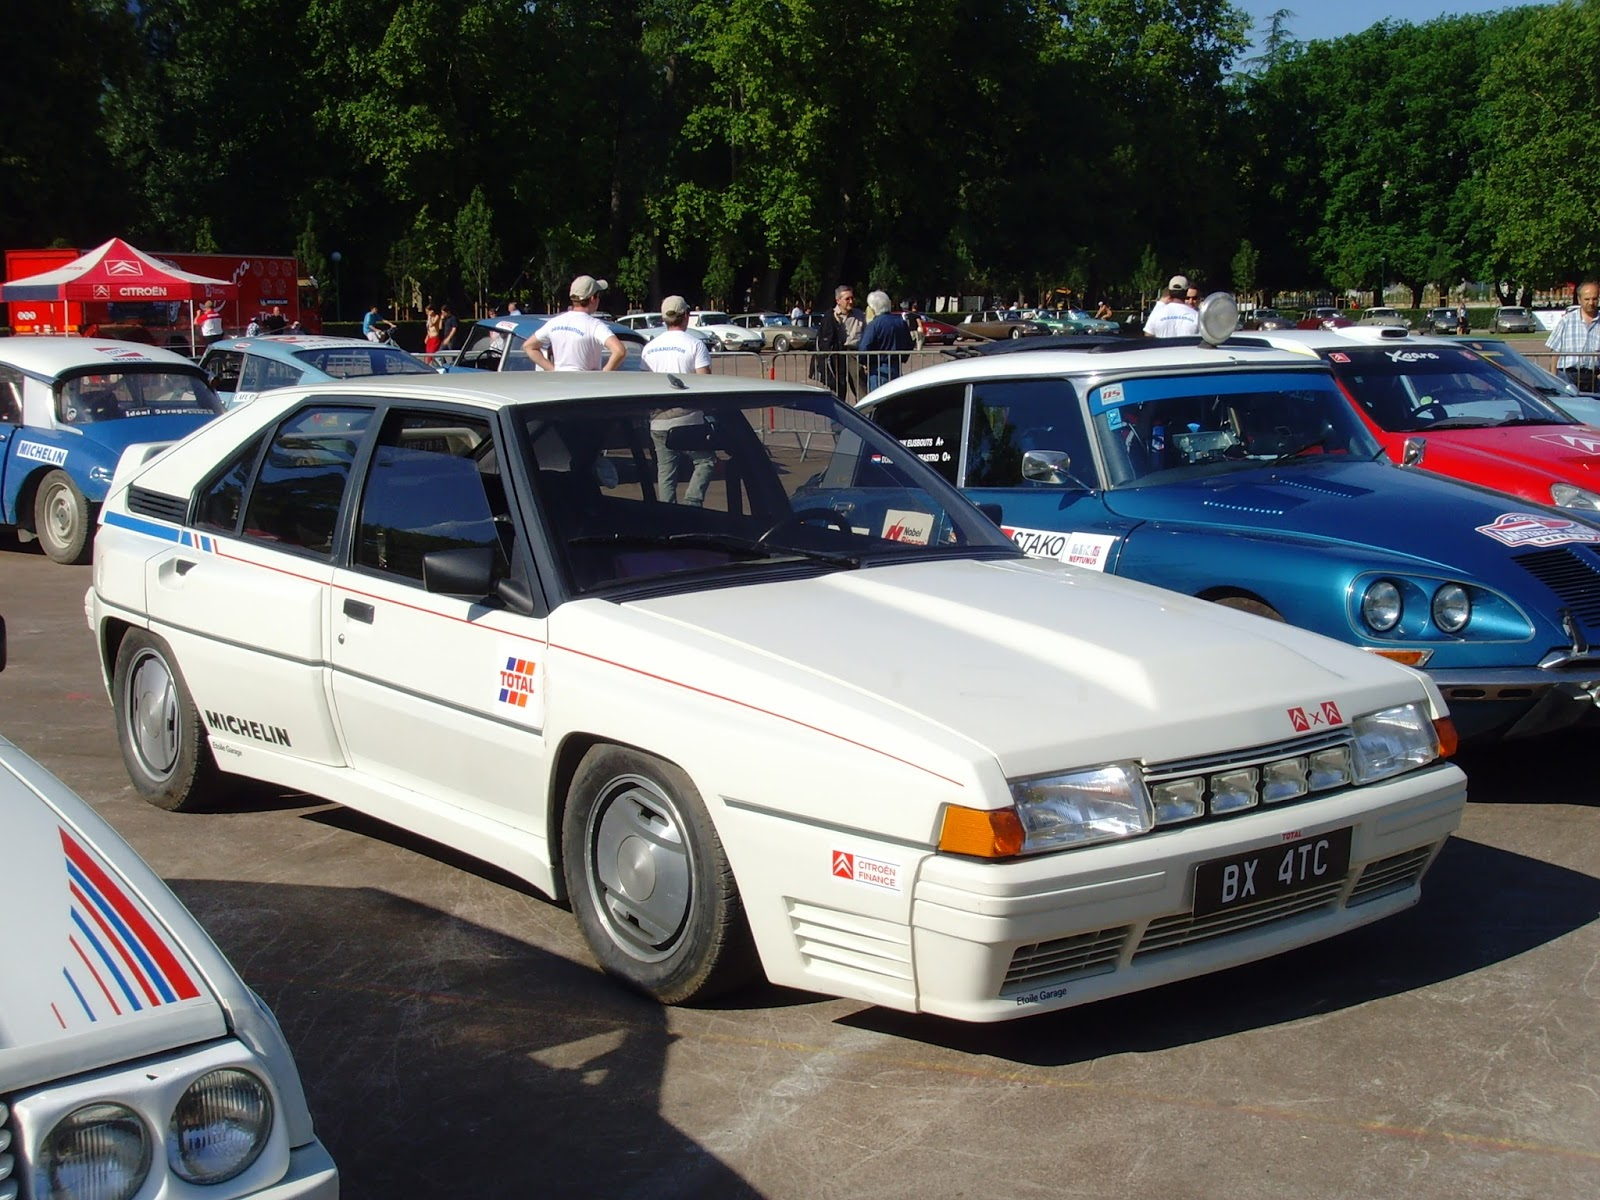 Motoring-Malaysia: The Group B Rally Car that every one has ...